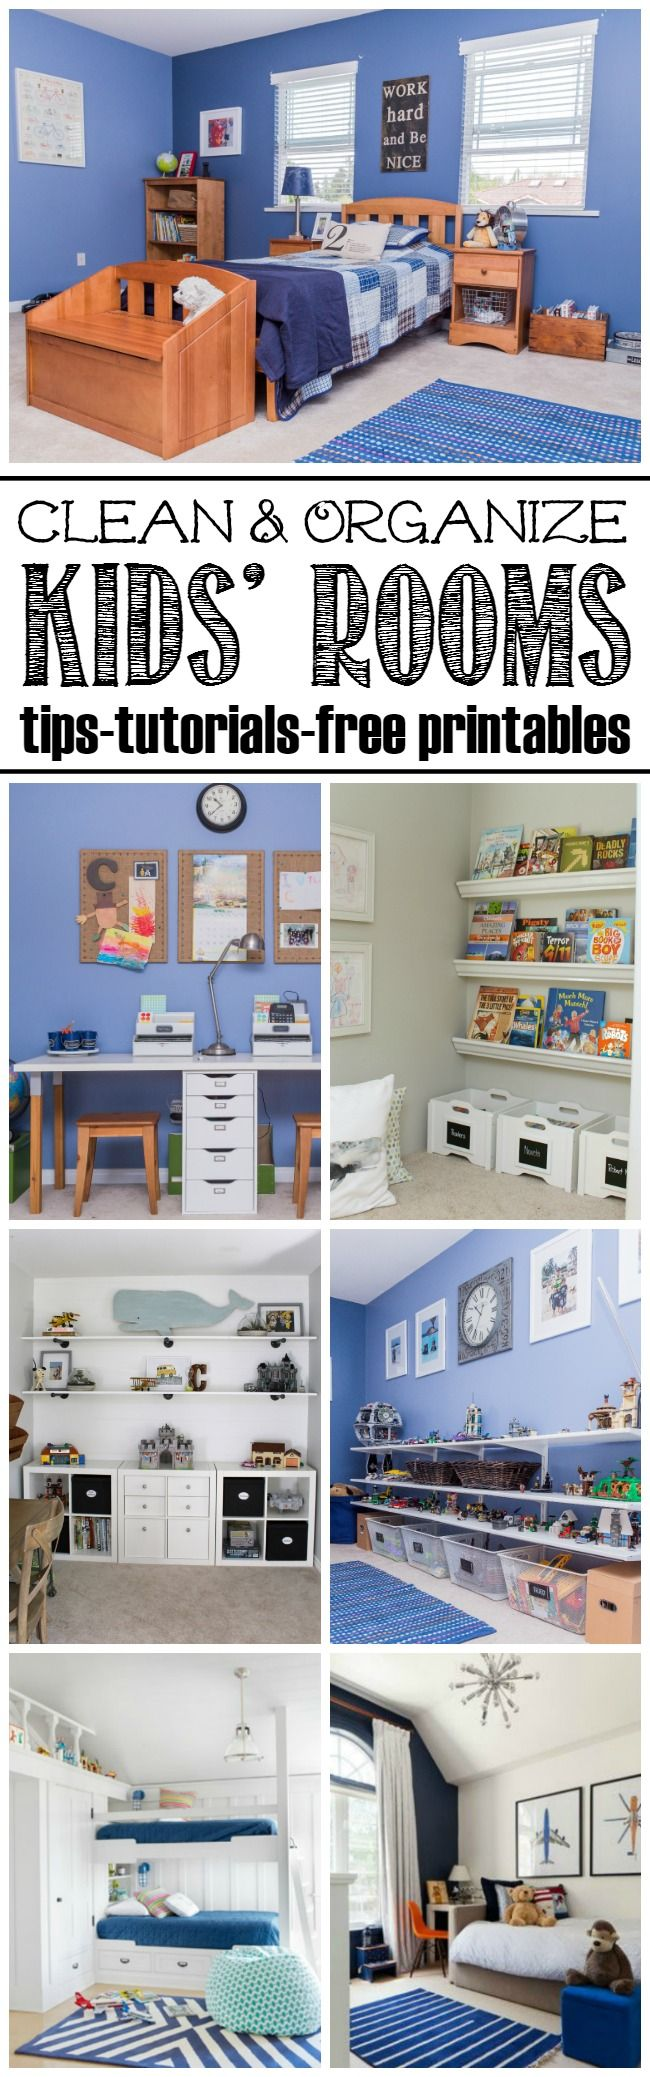 Everything you need to help with kids bedroom organization and cleaning. Free printables, tutorials and organization tips!